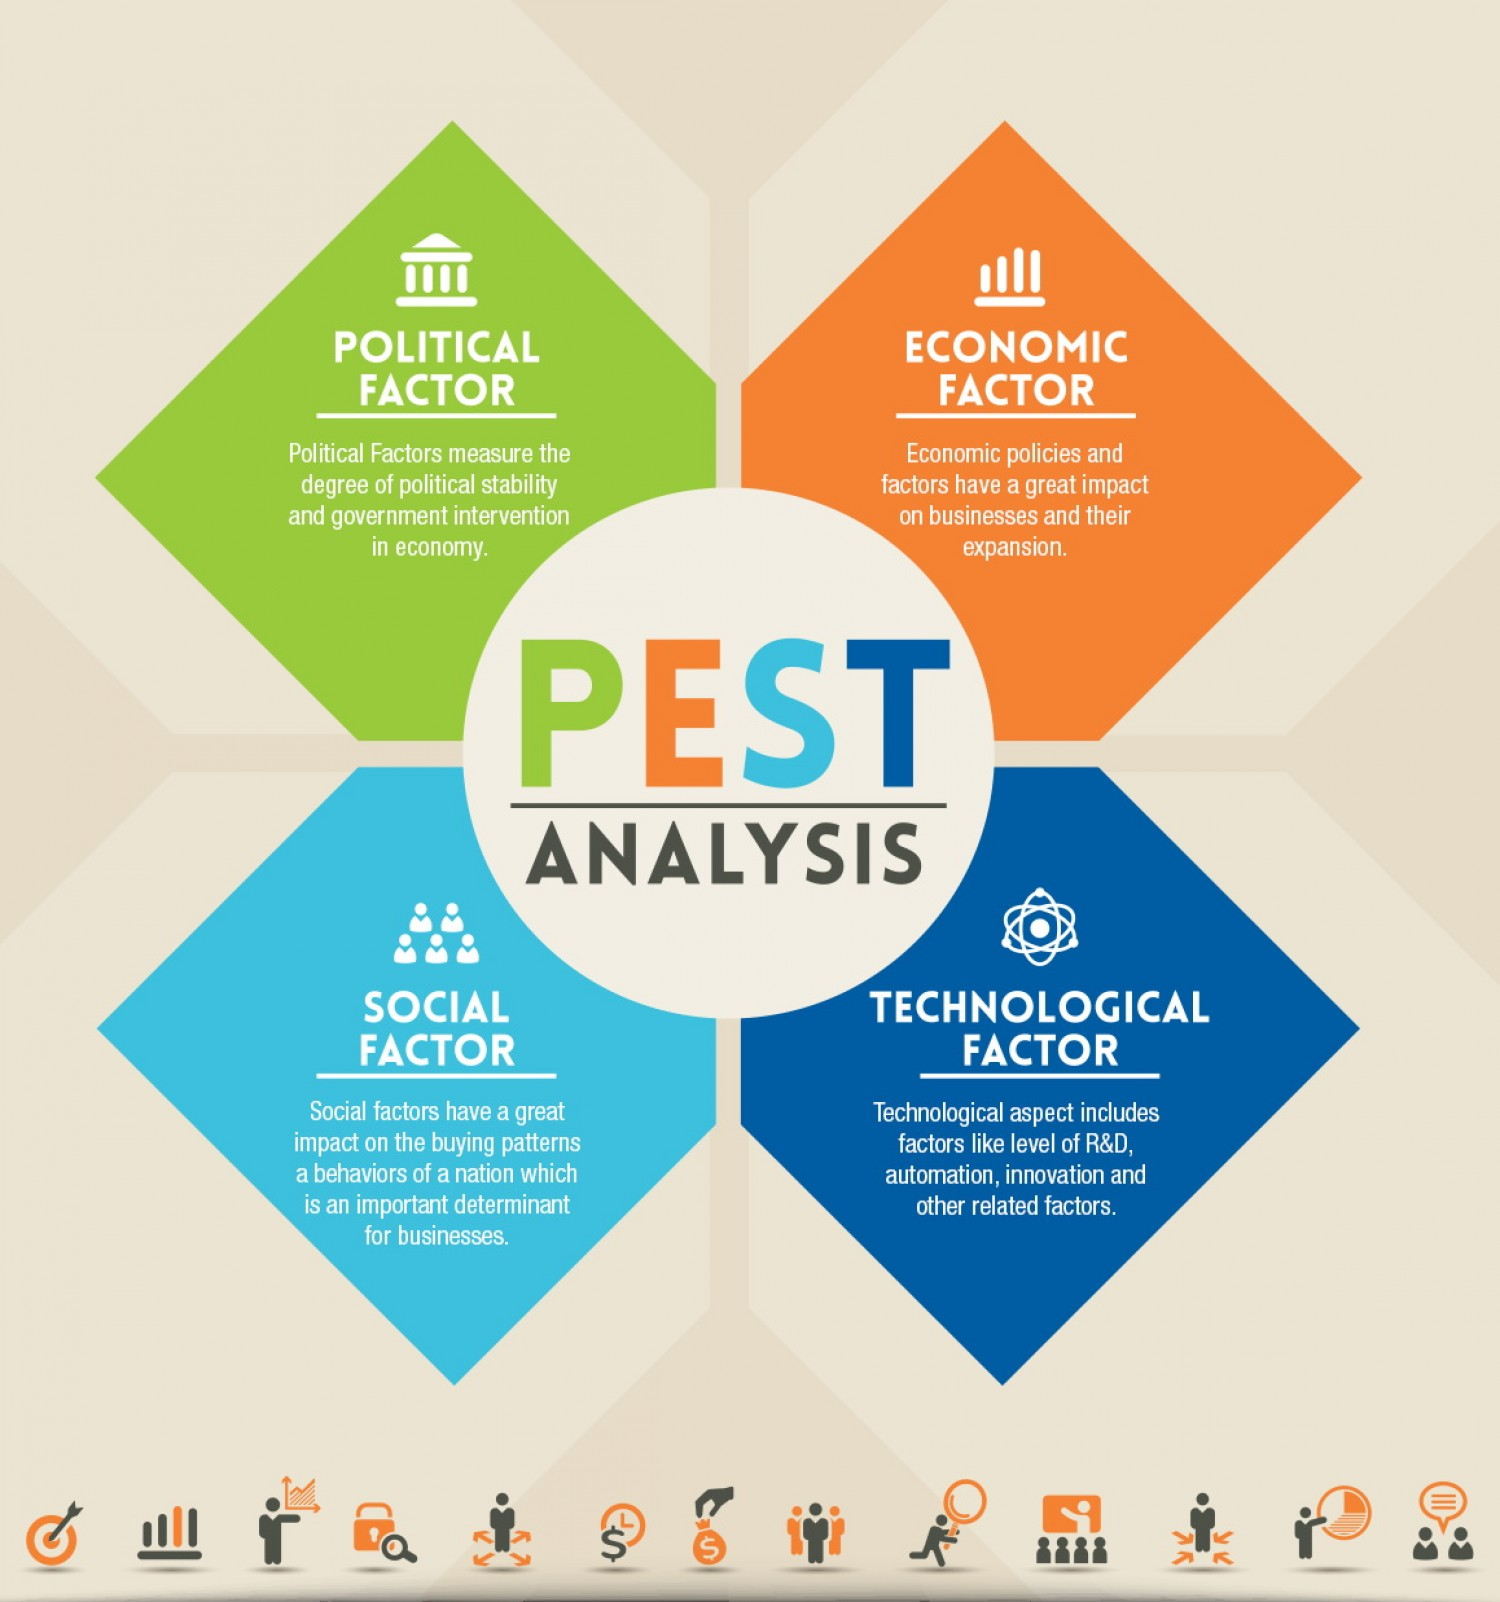 lepestc analysis A pestle analysis is often used much like a swot analysis, only in more detail to determine if a business venture, product or opportunity will be viable for a company to pursue or to determine if the client should pursue the challenge.